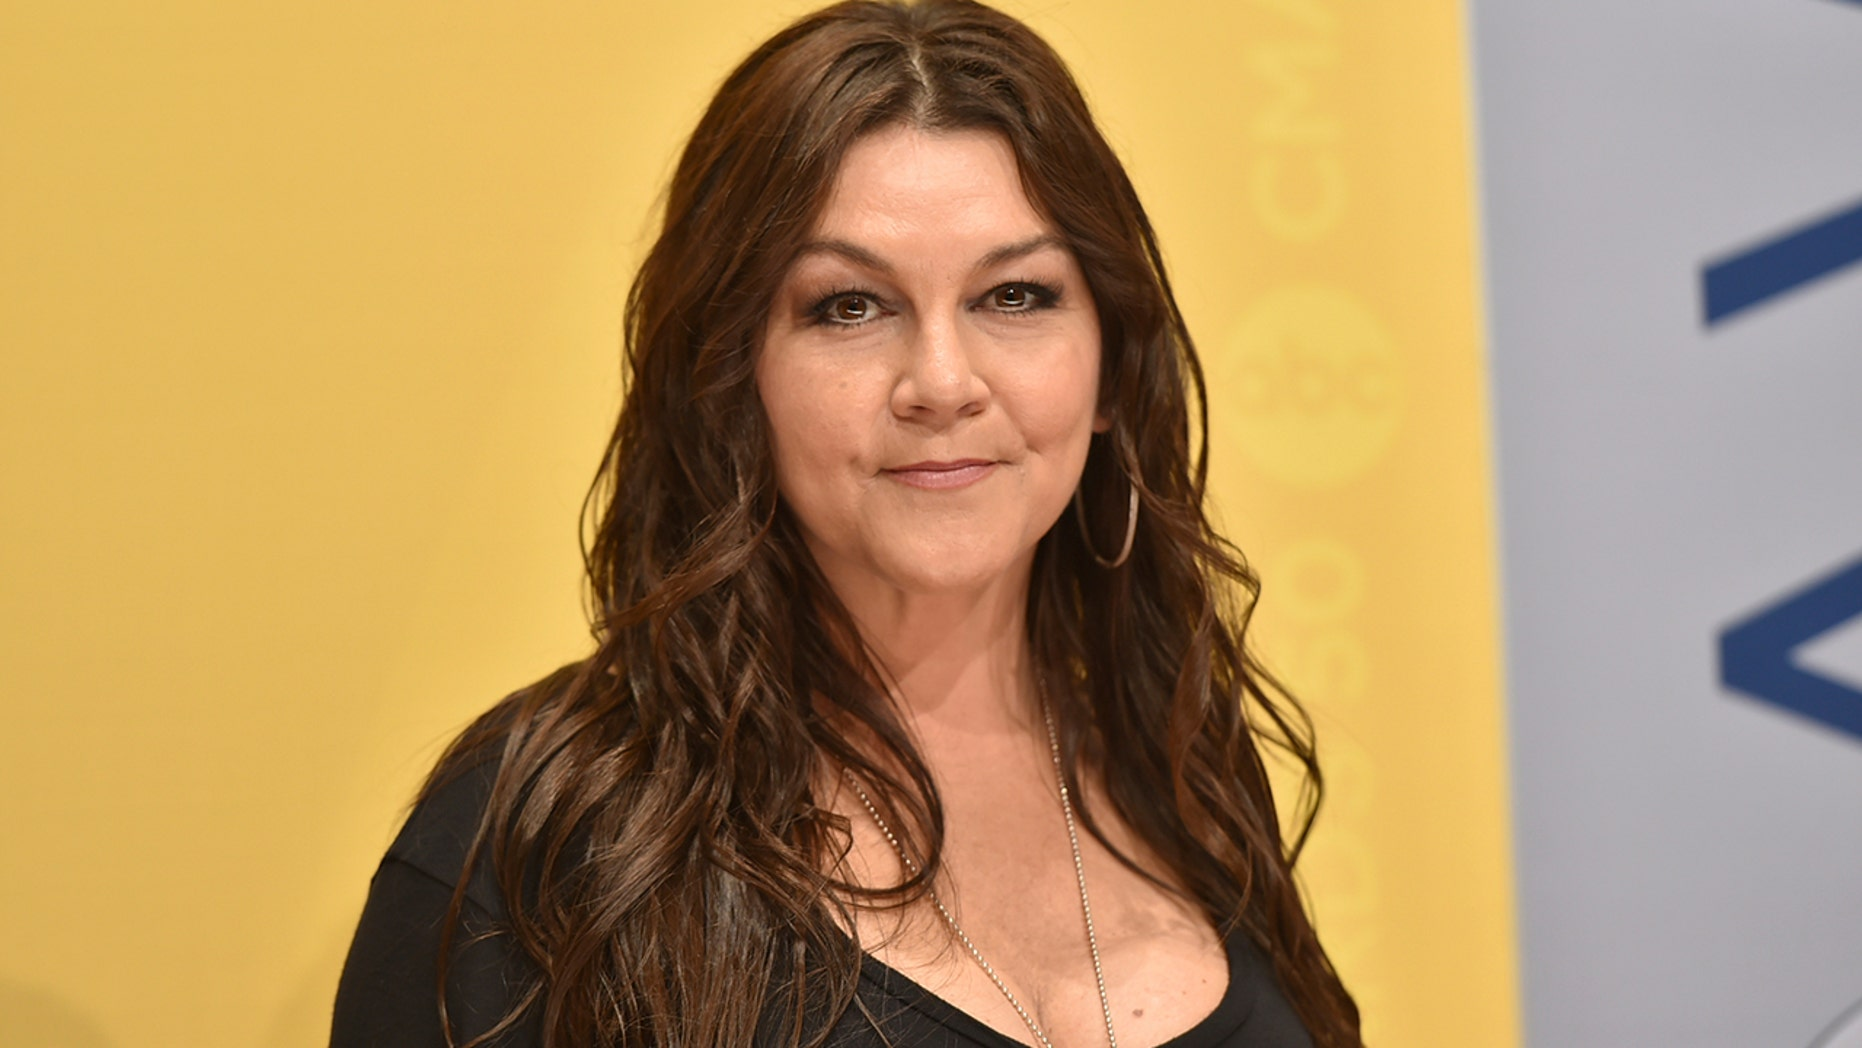 Charges against singer Gretchen Wilson over an incident that happened at an airport have been dropped.